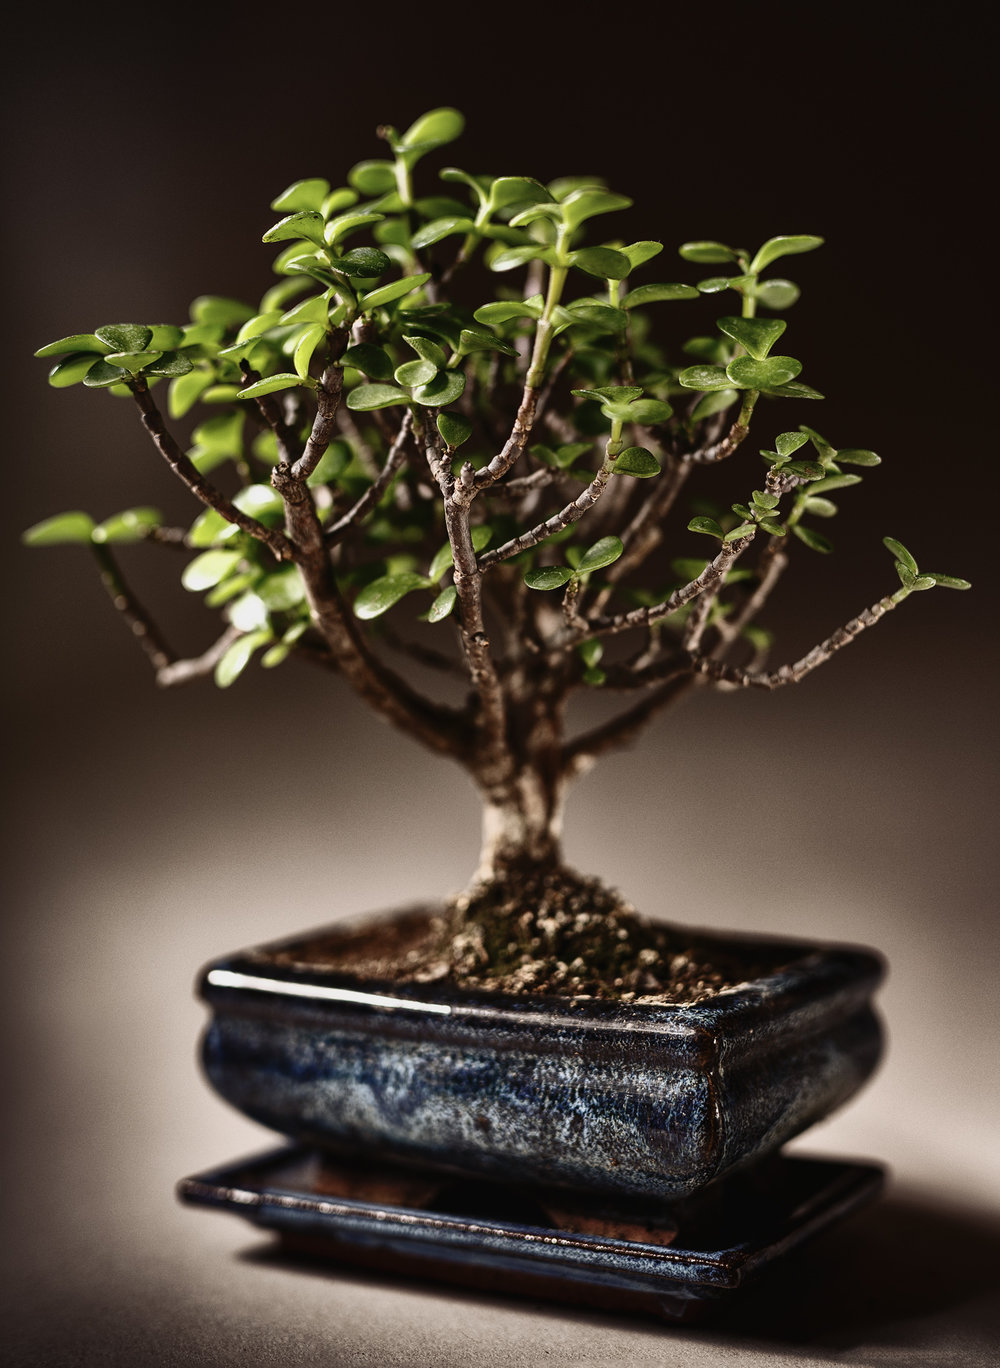 Bonsai Baum - Foto